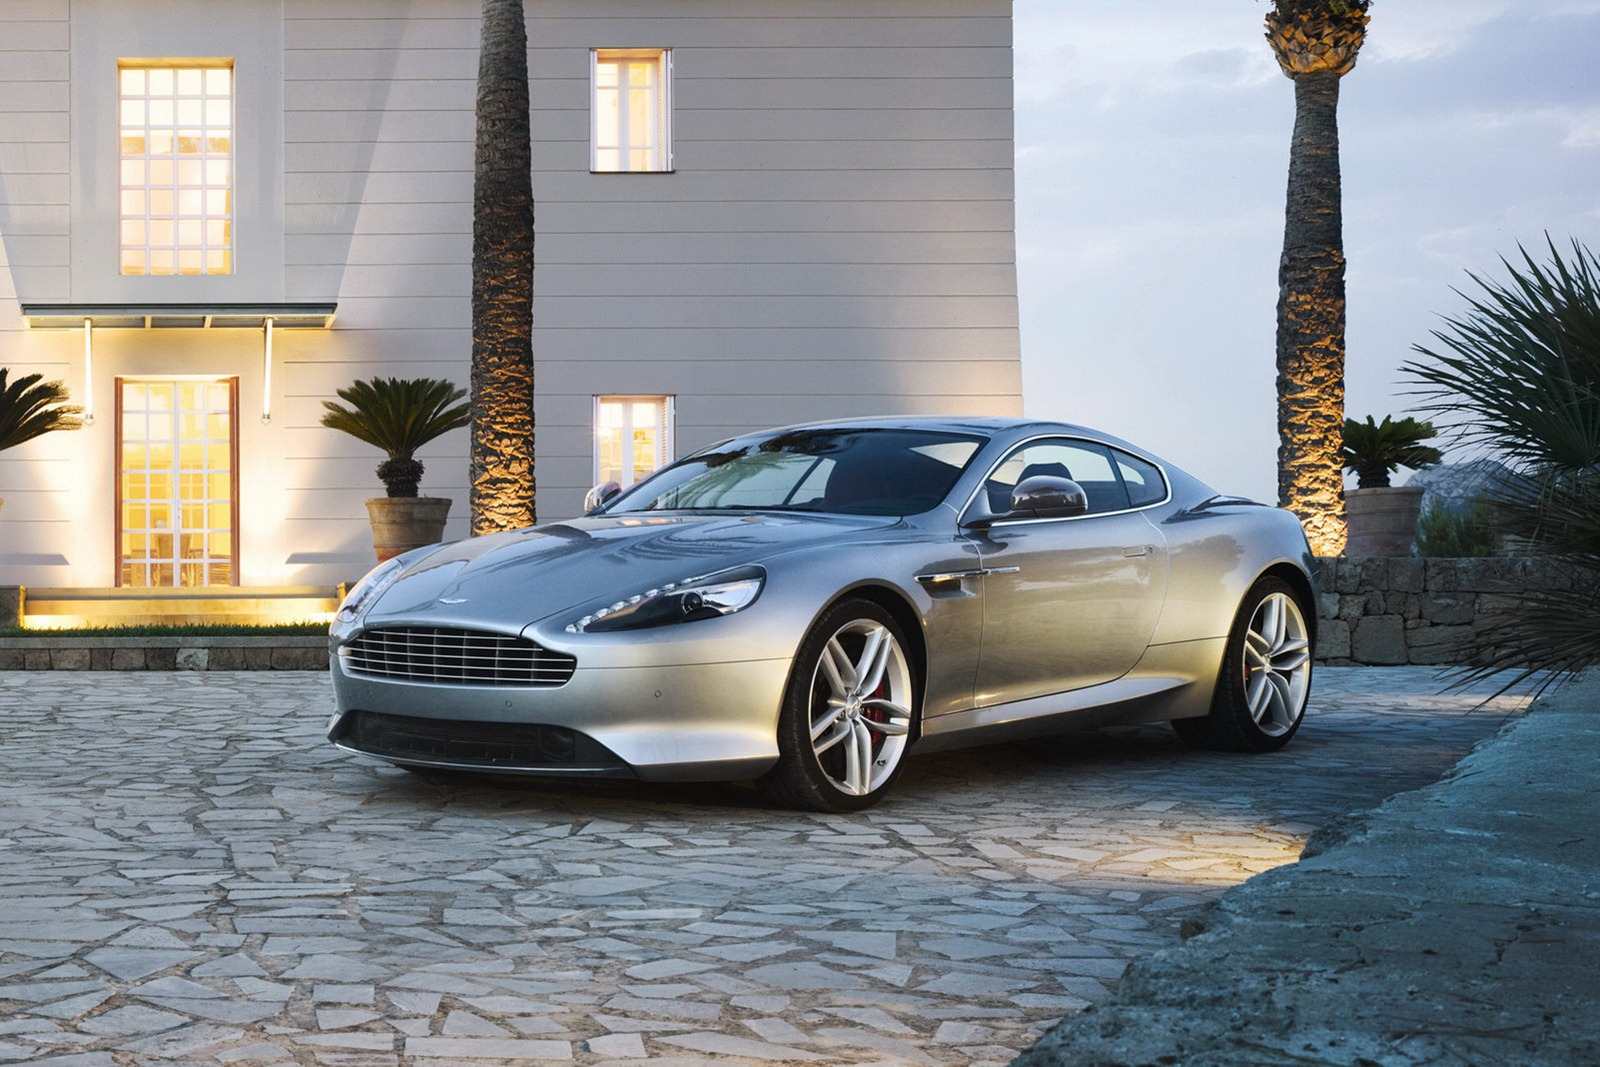 2013 aston martin db9 revealed autoevolution. Cars Review. Best American Auto & Cars Review